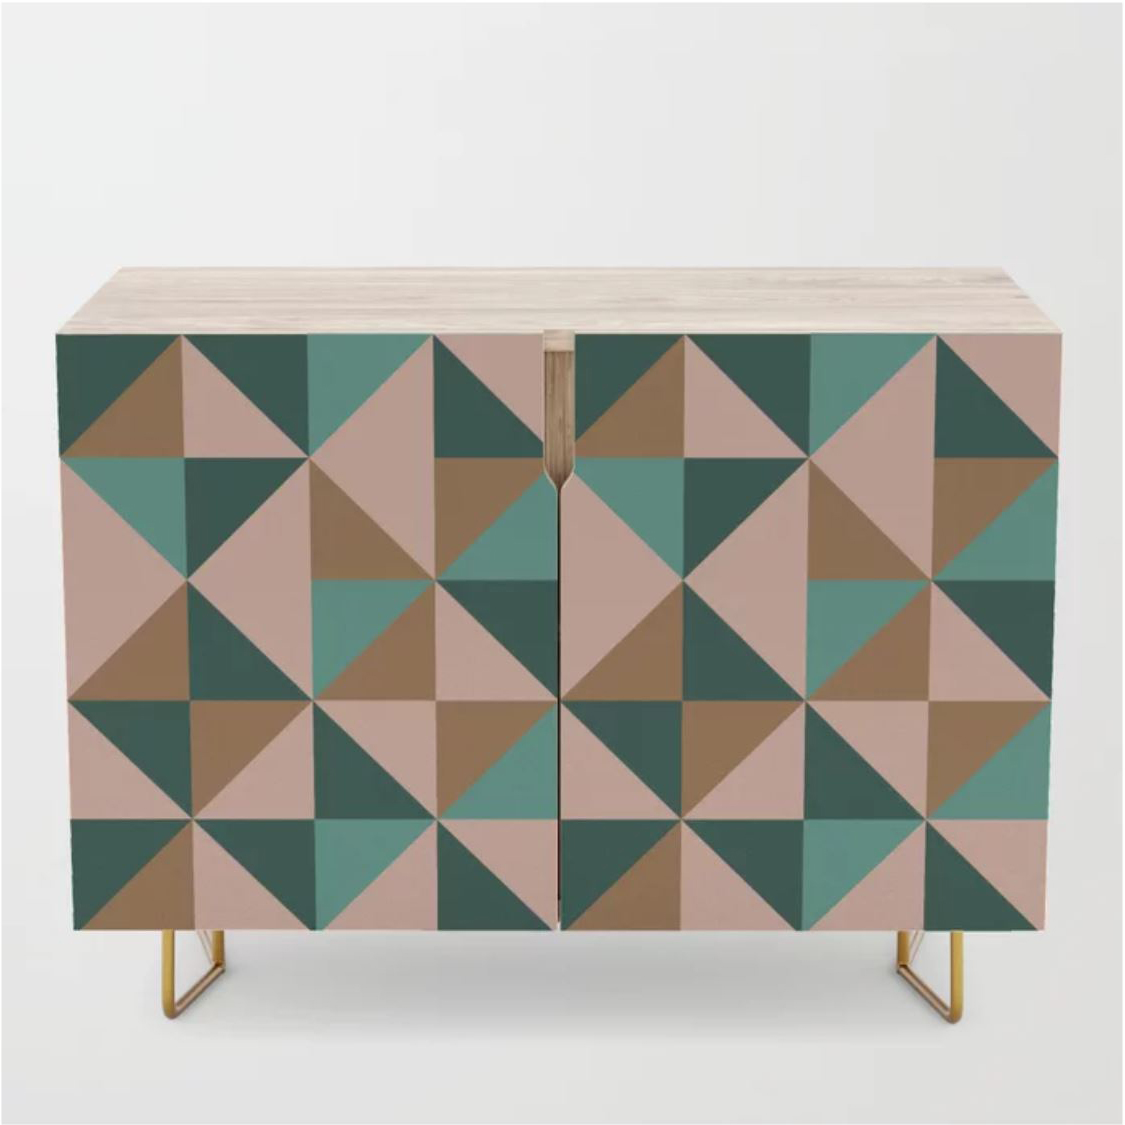 Blush pink and green teal credenza from society6